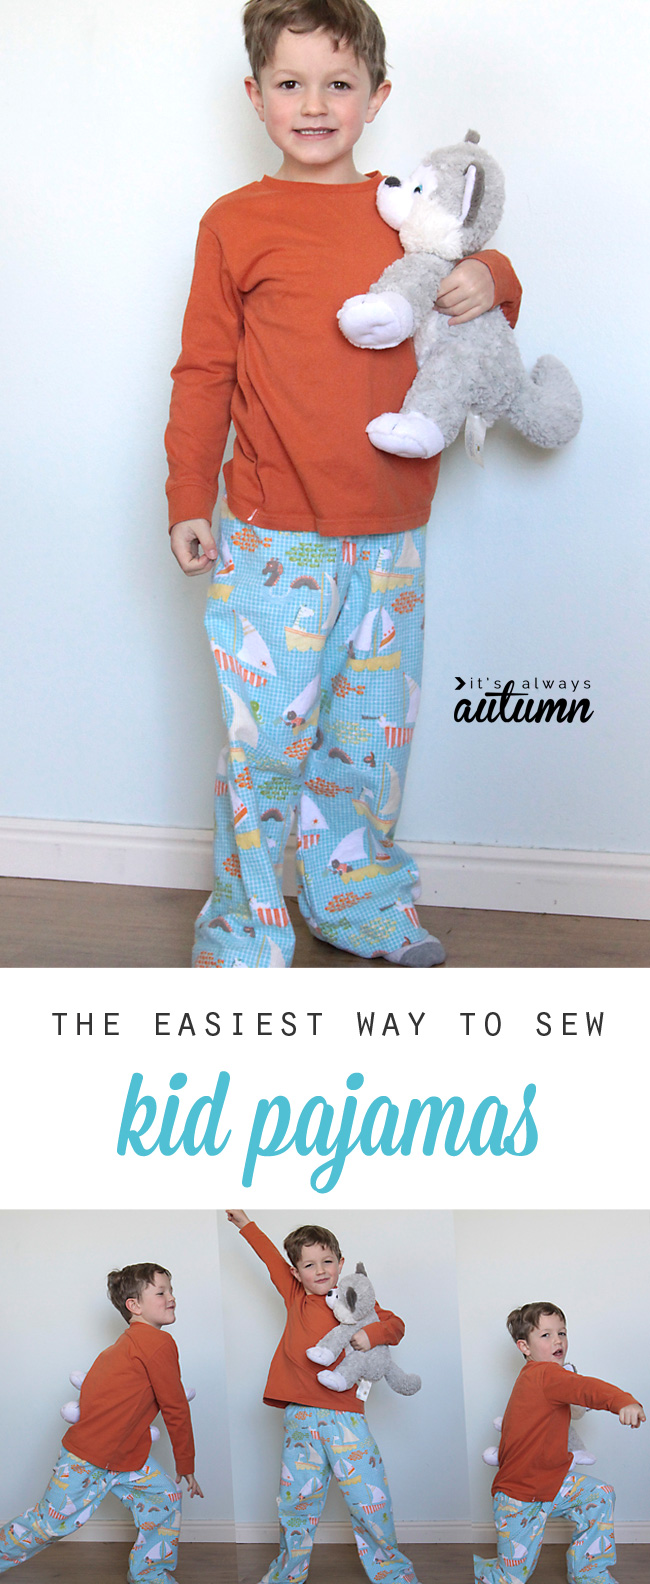 the easiest way to make kid pj's + a fabric giveaway